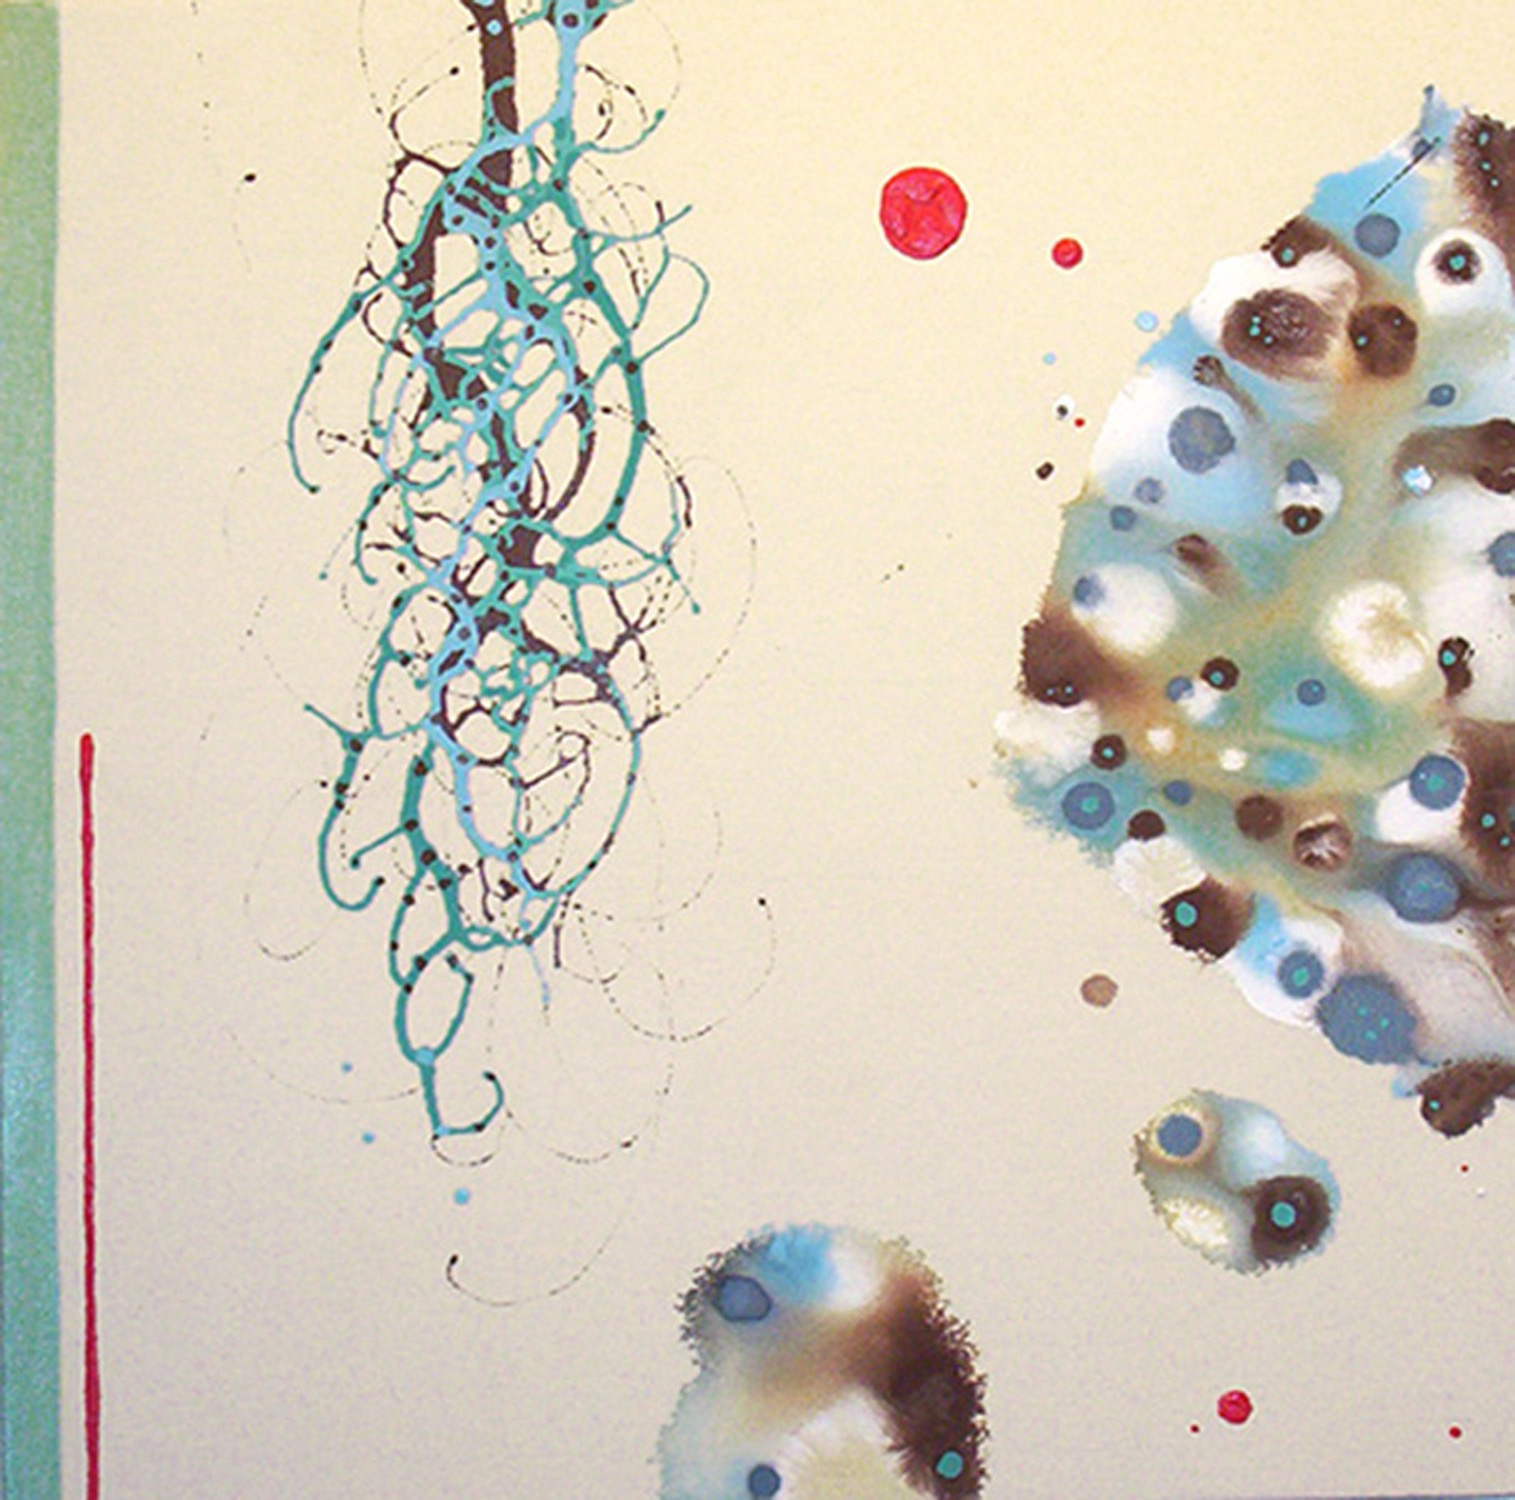 Symbiogenesis  , 2005, Acrylic on canvas, 28 x 28 in.  Collection of Duncan Dobbelmann